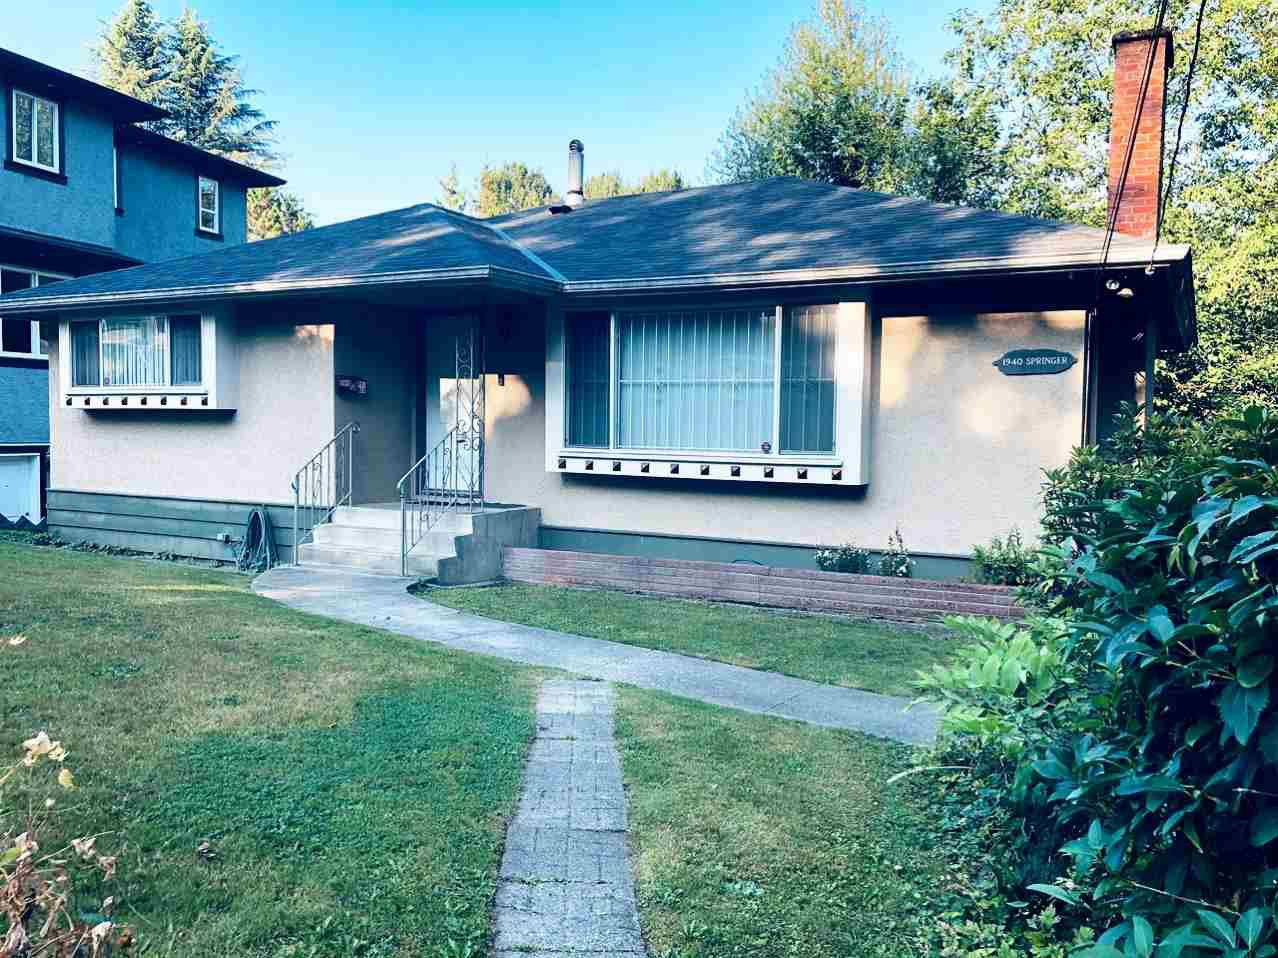 Main Photo: 1940 SPRINGER Avenue in Burnaby: Parkcrest House for sale (Burnaby North)  : MLS®# R2396163